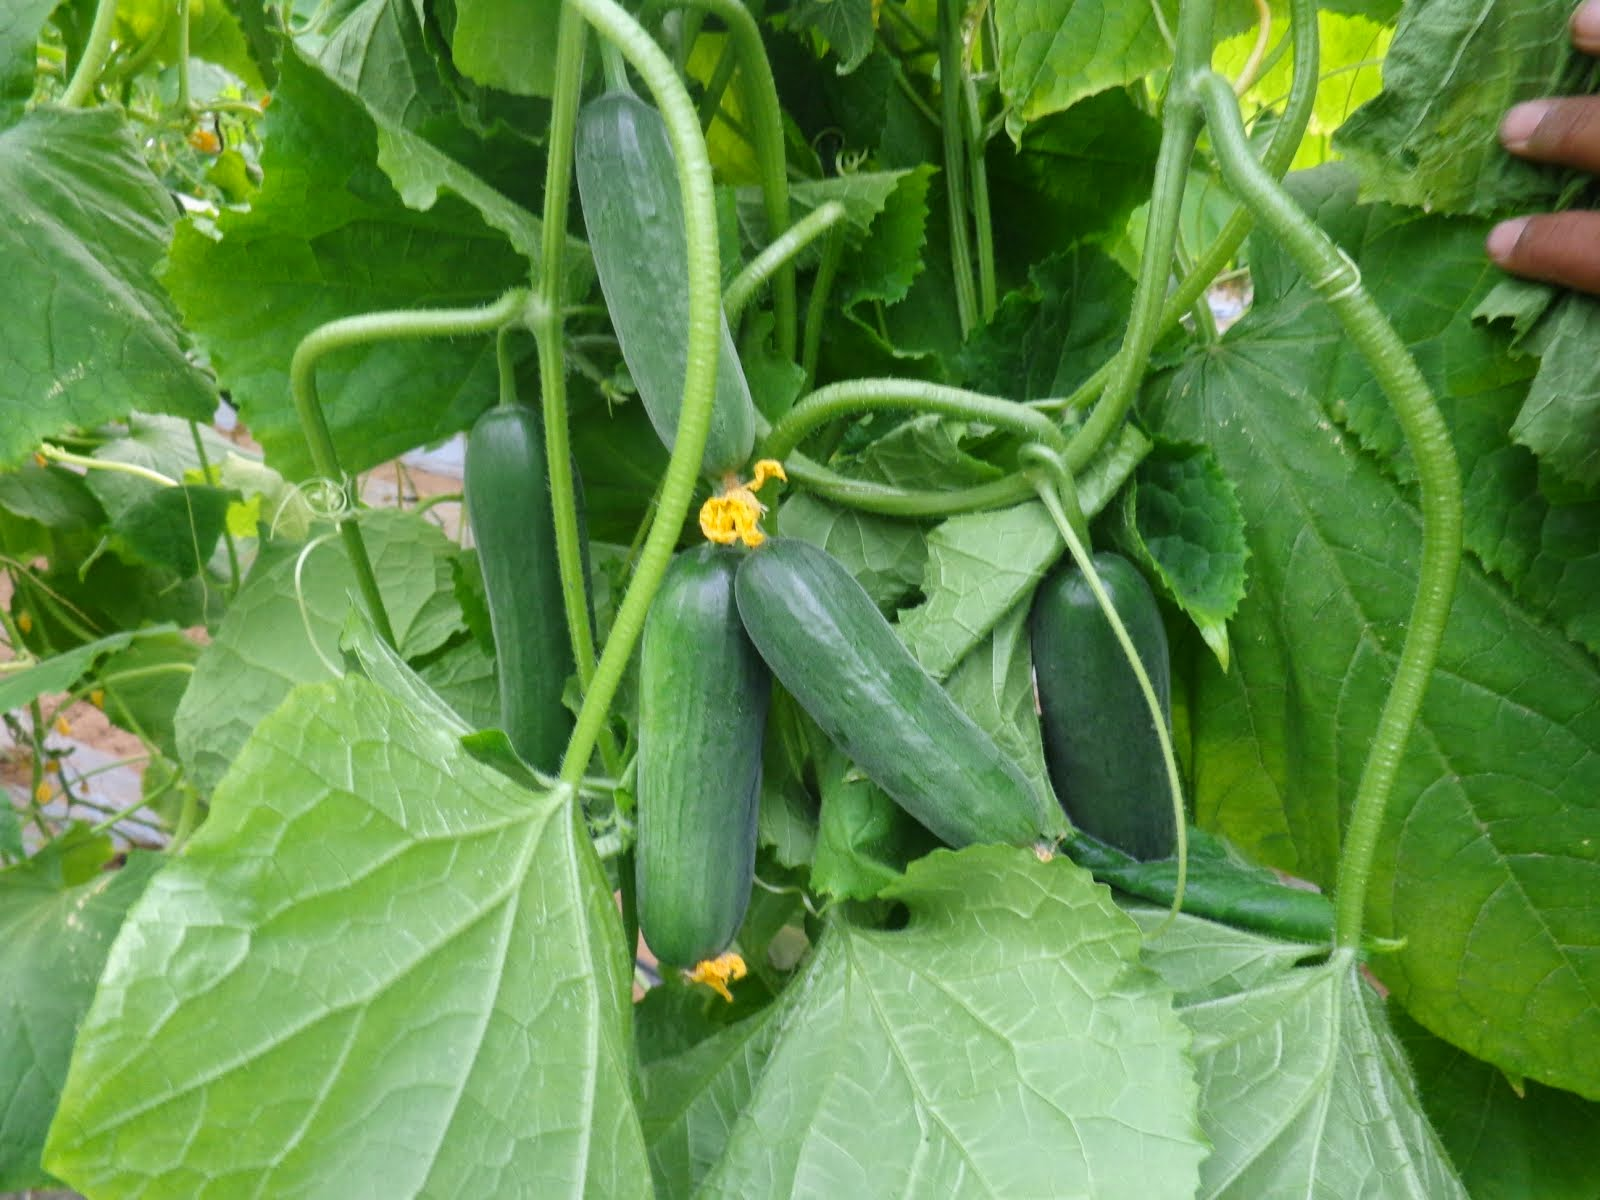 CUCUMBER CULTIVATIONIN GREEN HOUSE